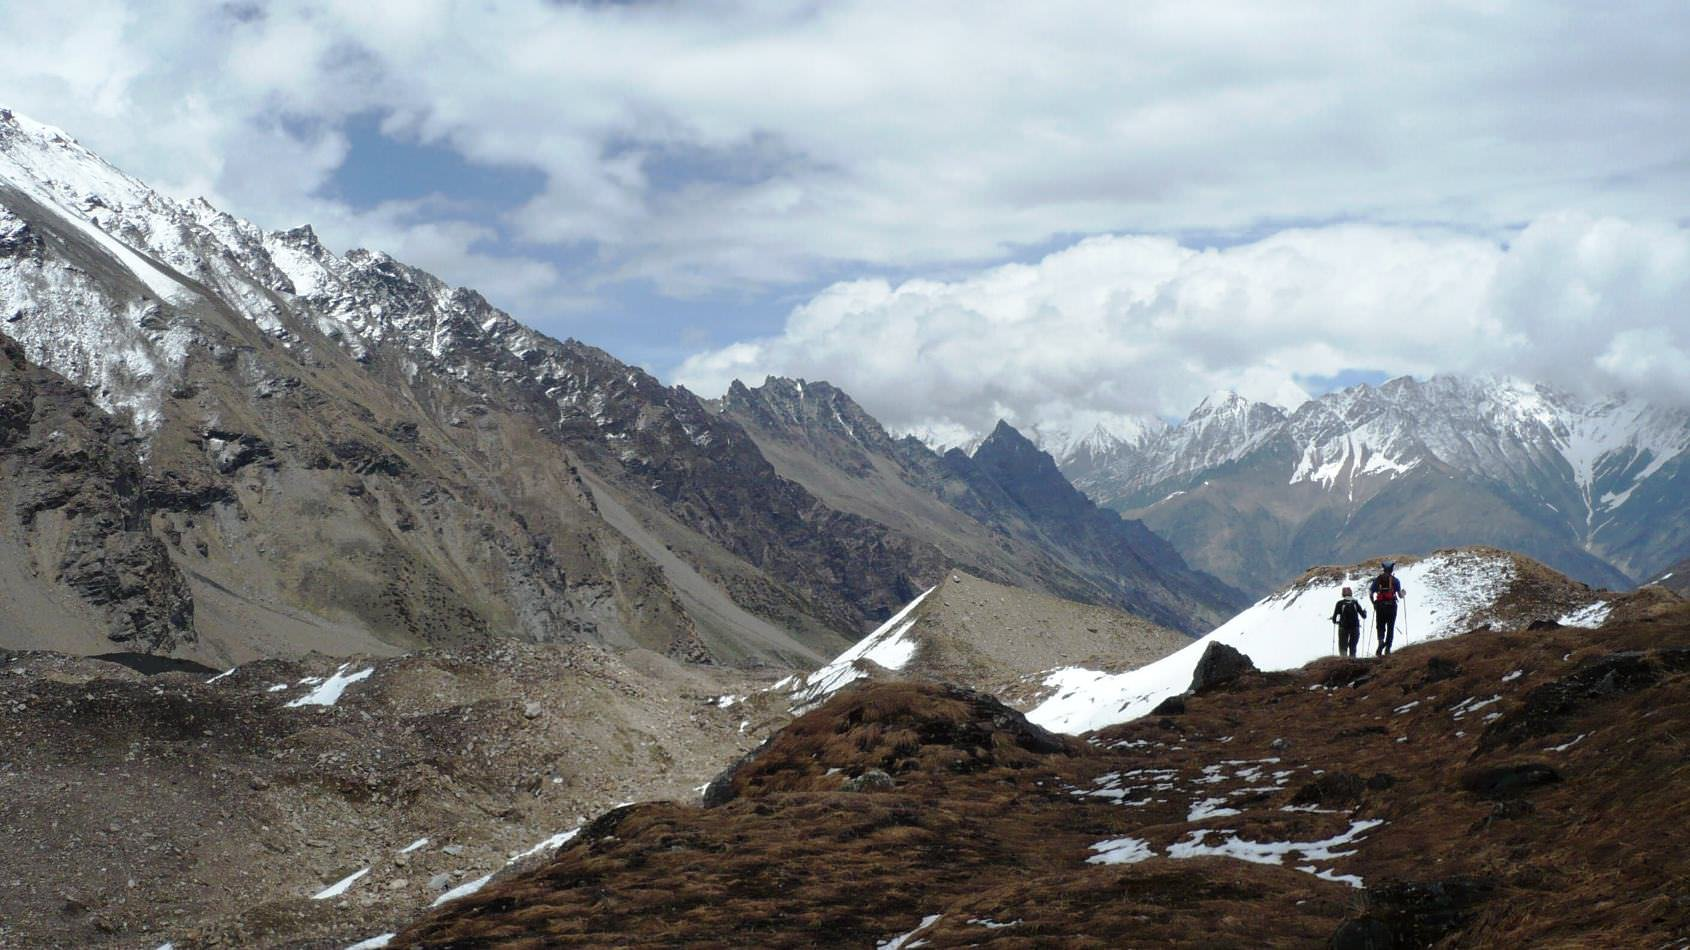 Raft On Ganga + Trek The Himalaya